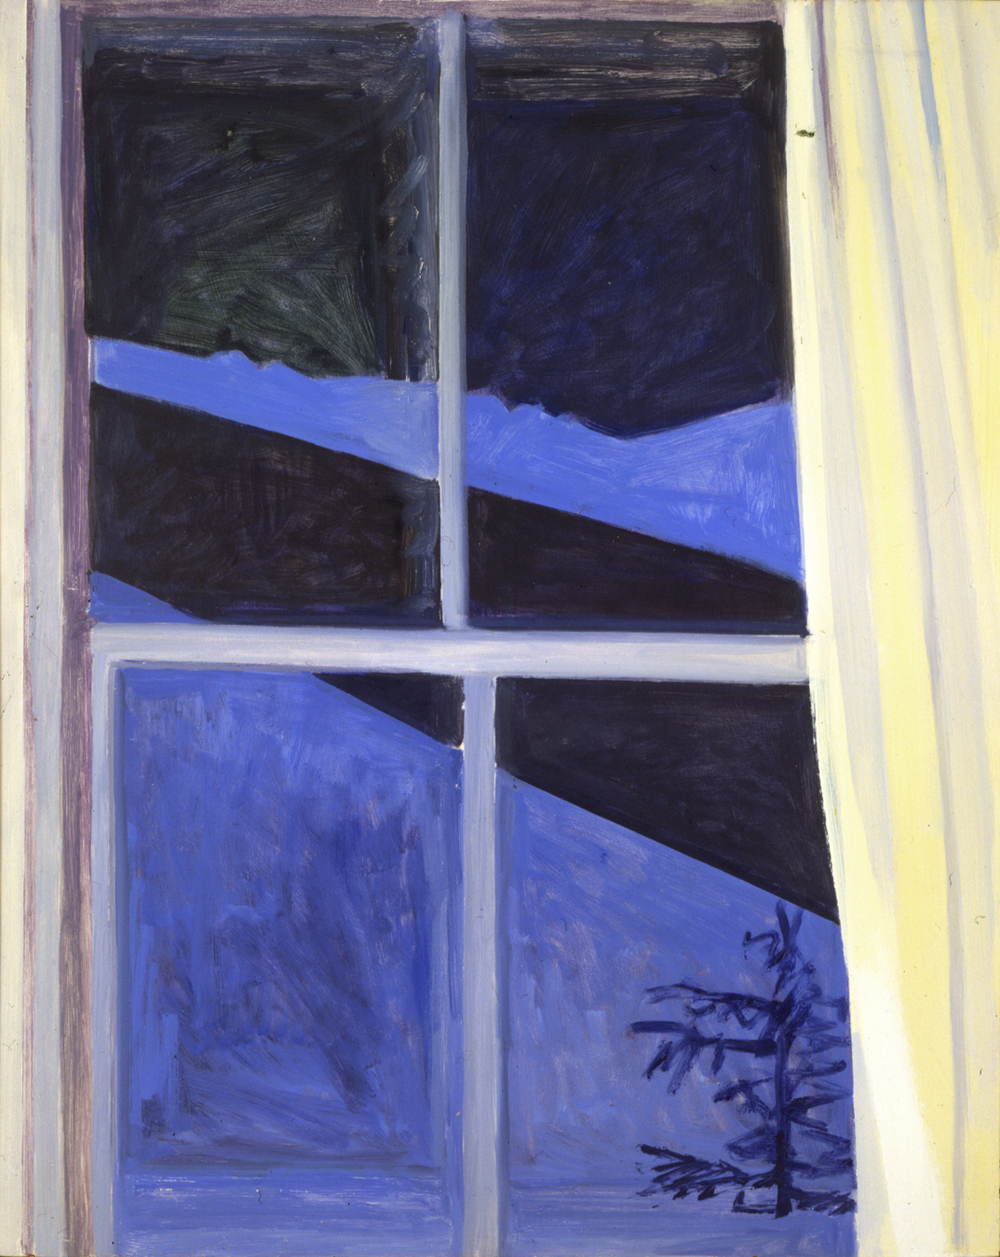 LD96BlueNightWindow.jpg